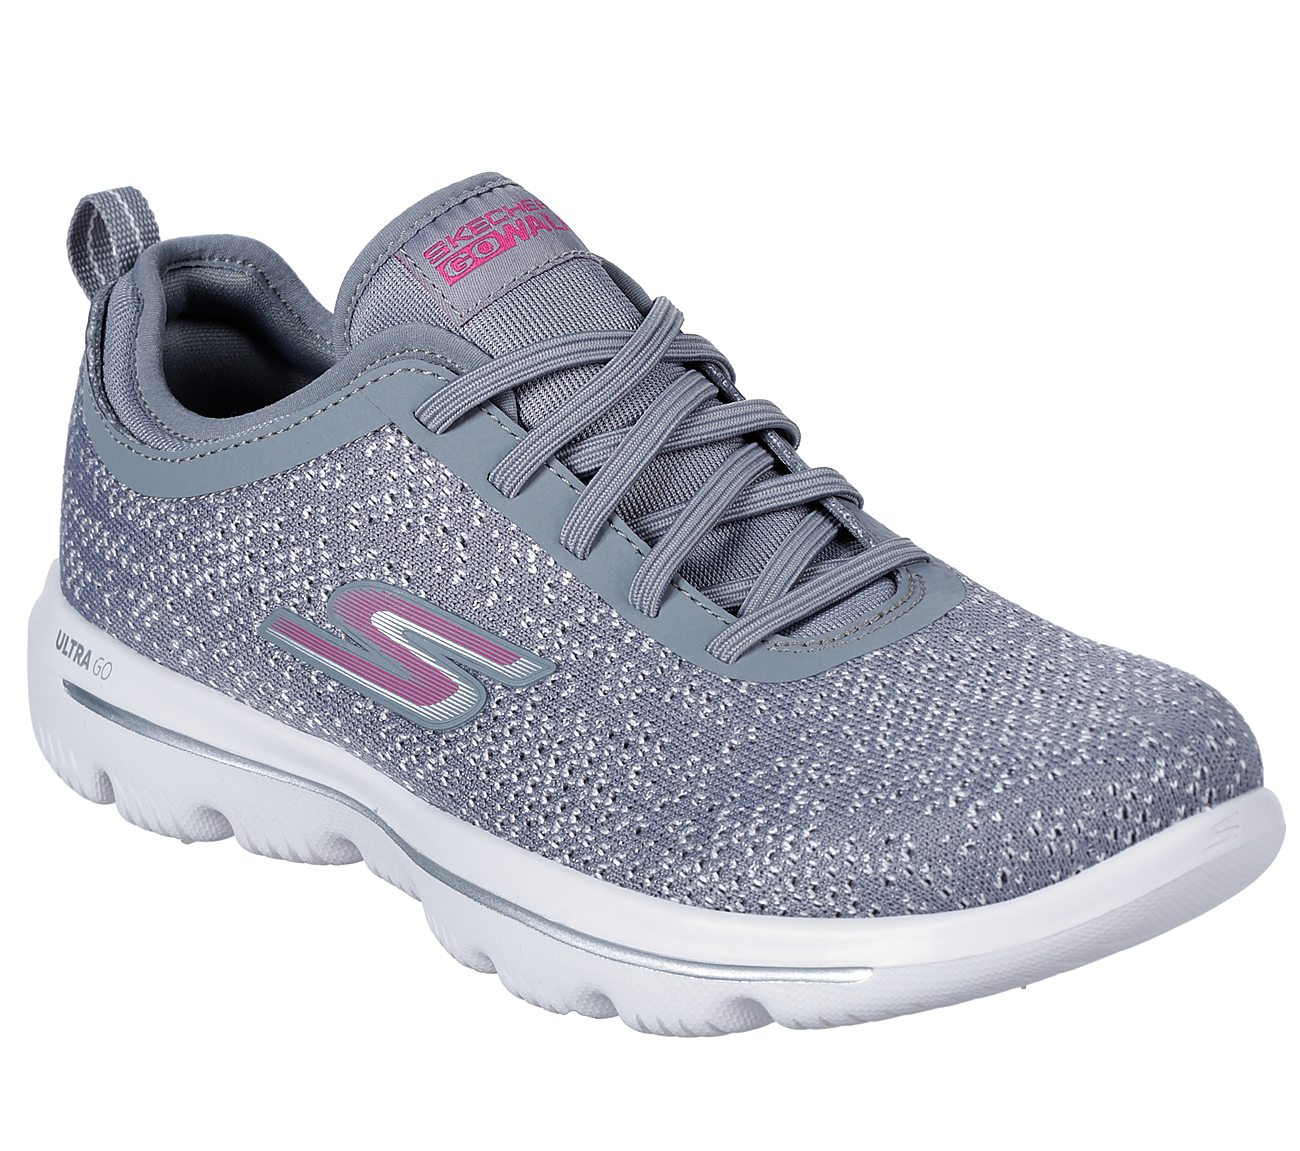 Skechers go walk shoes | in Cardiff